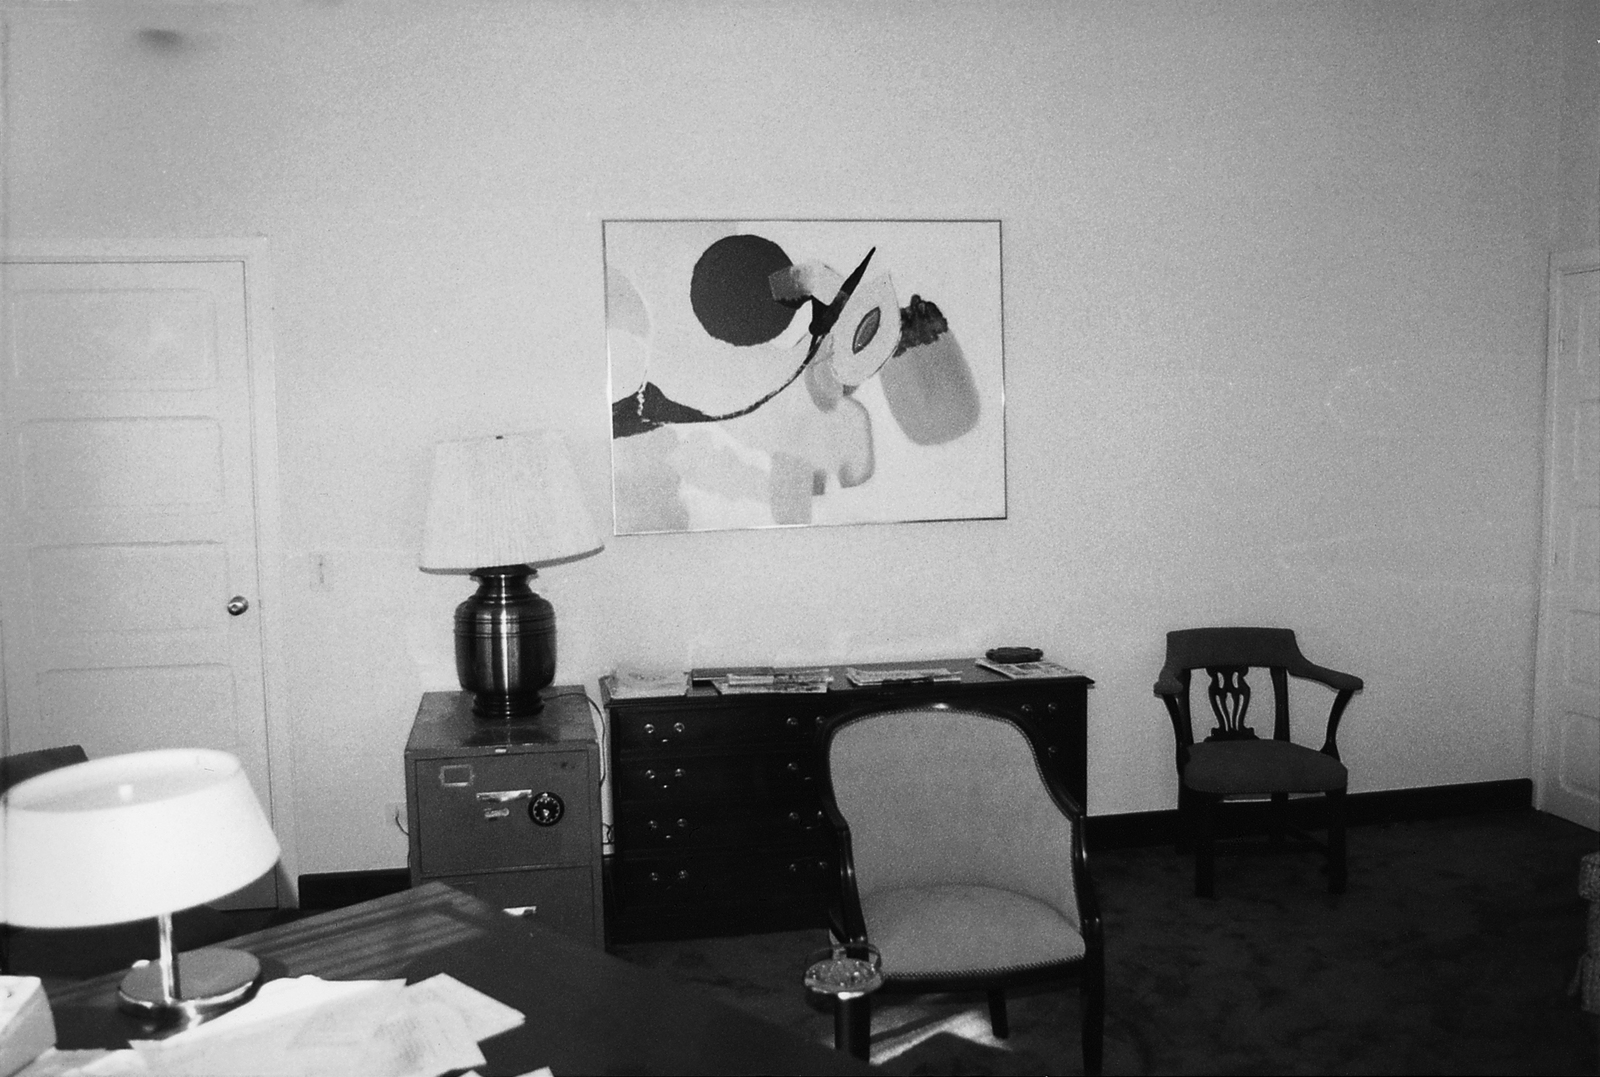 Brazzaville - Chancery Office Building - 1979